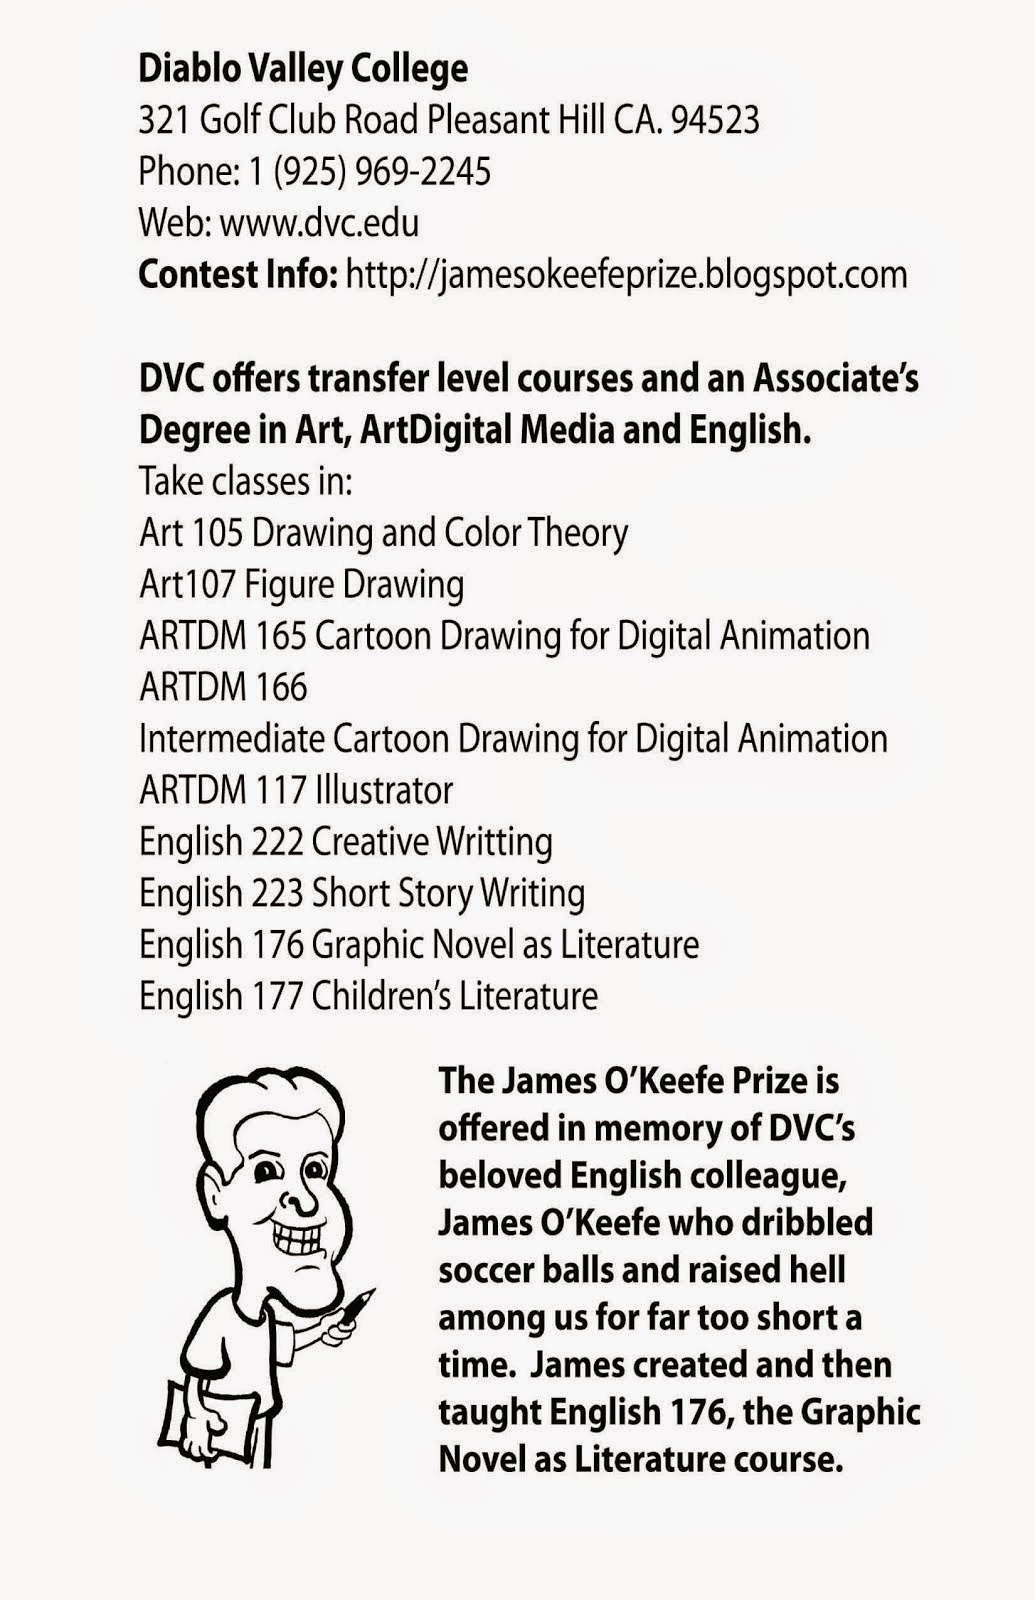 Cartooning, Illustration, Animation Classes